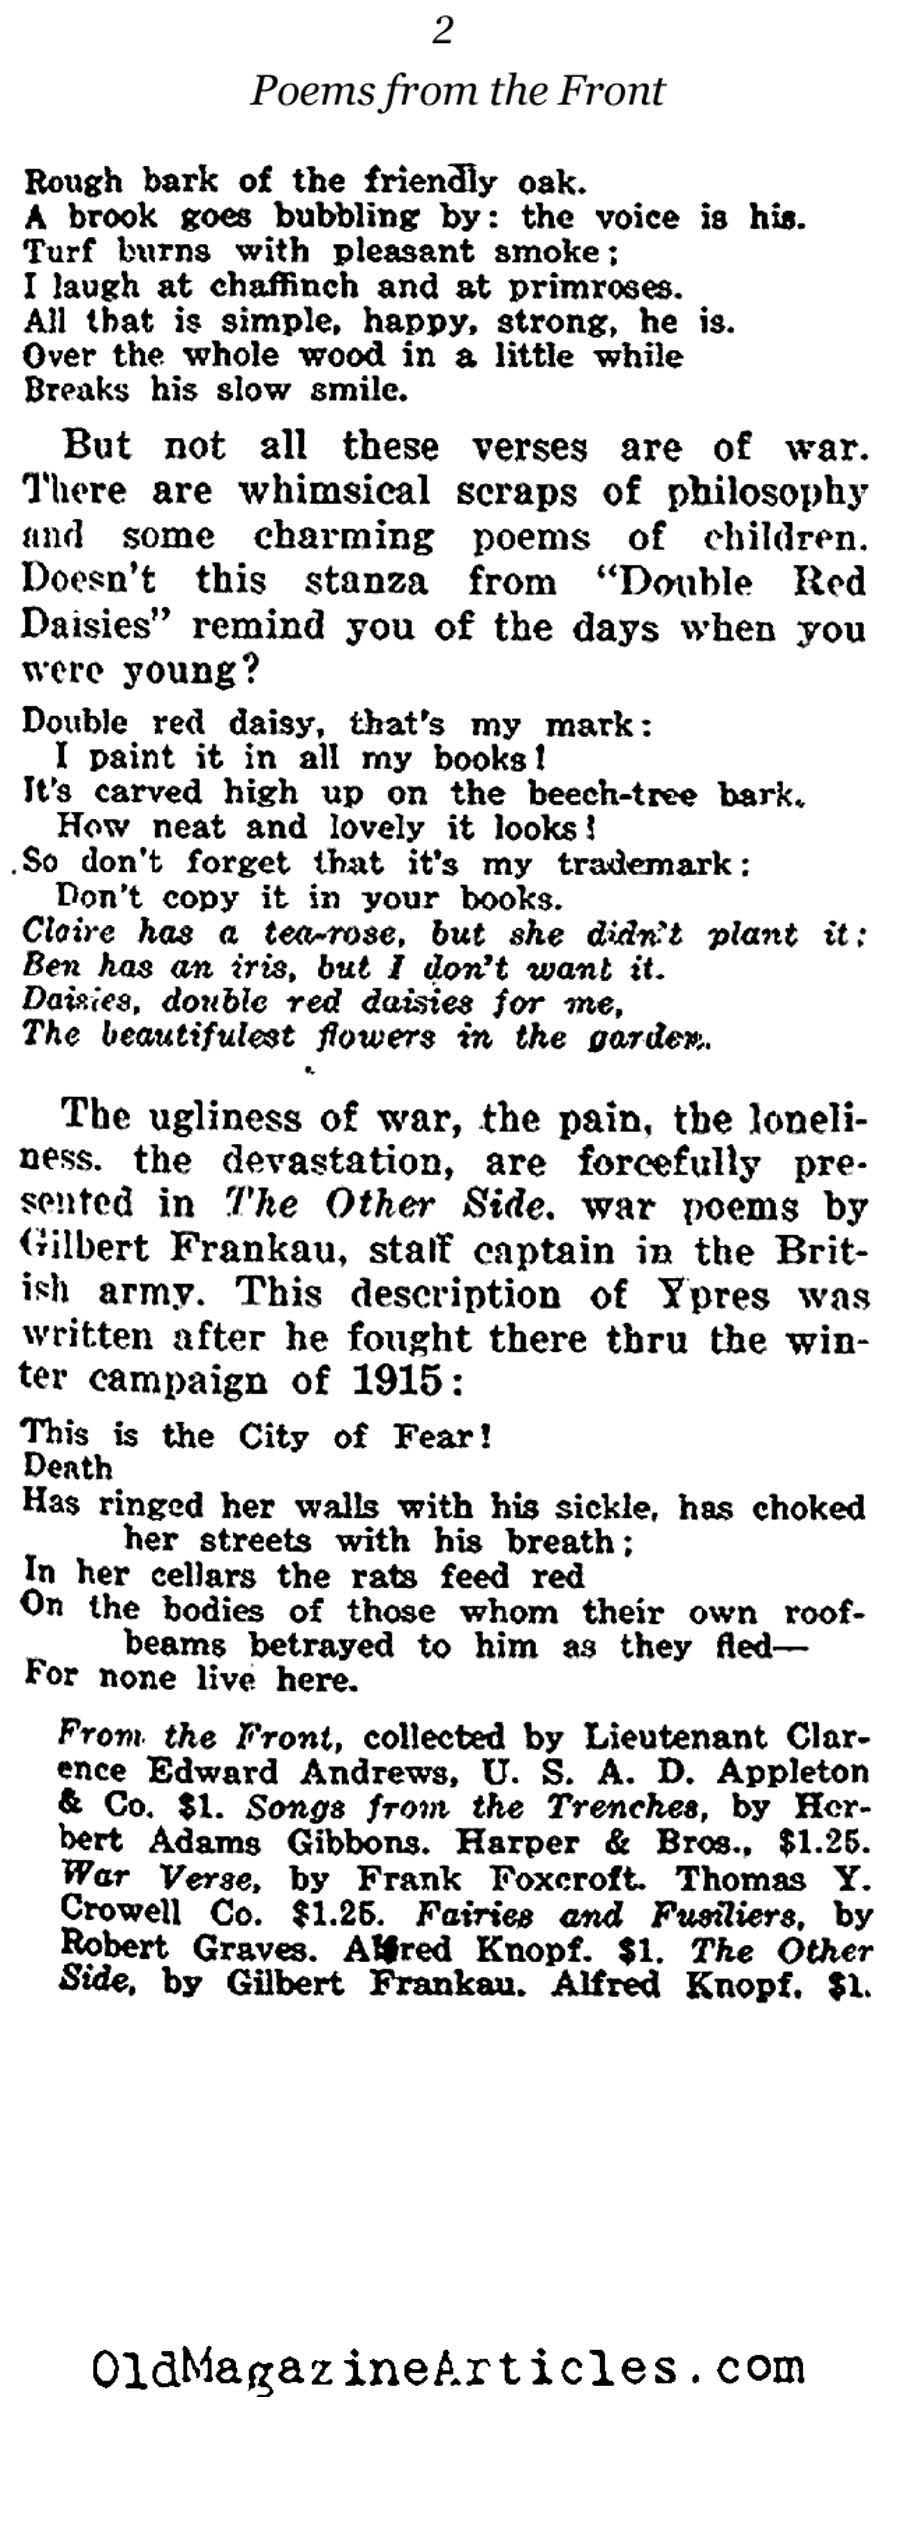 Three Collections of War Poetry Reviewed (The Independent, 1919)